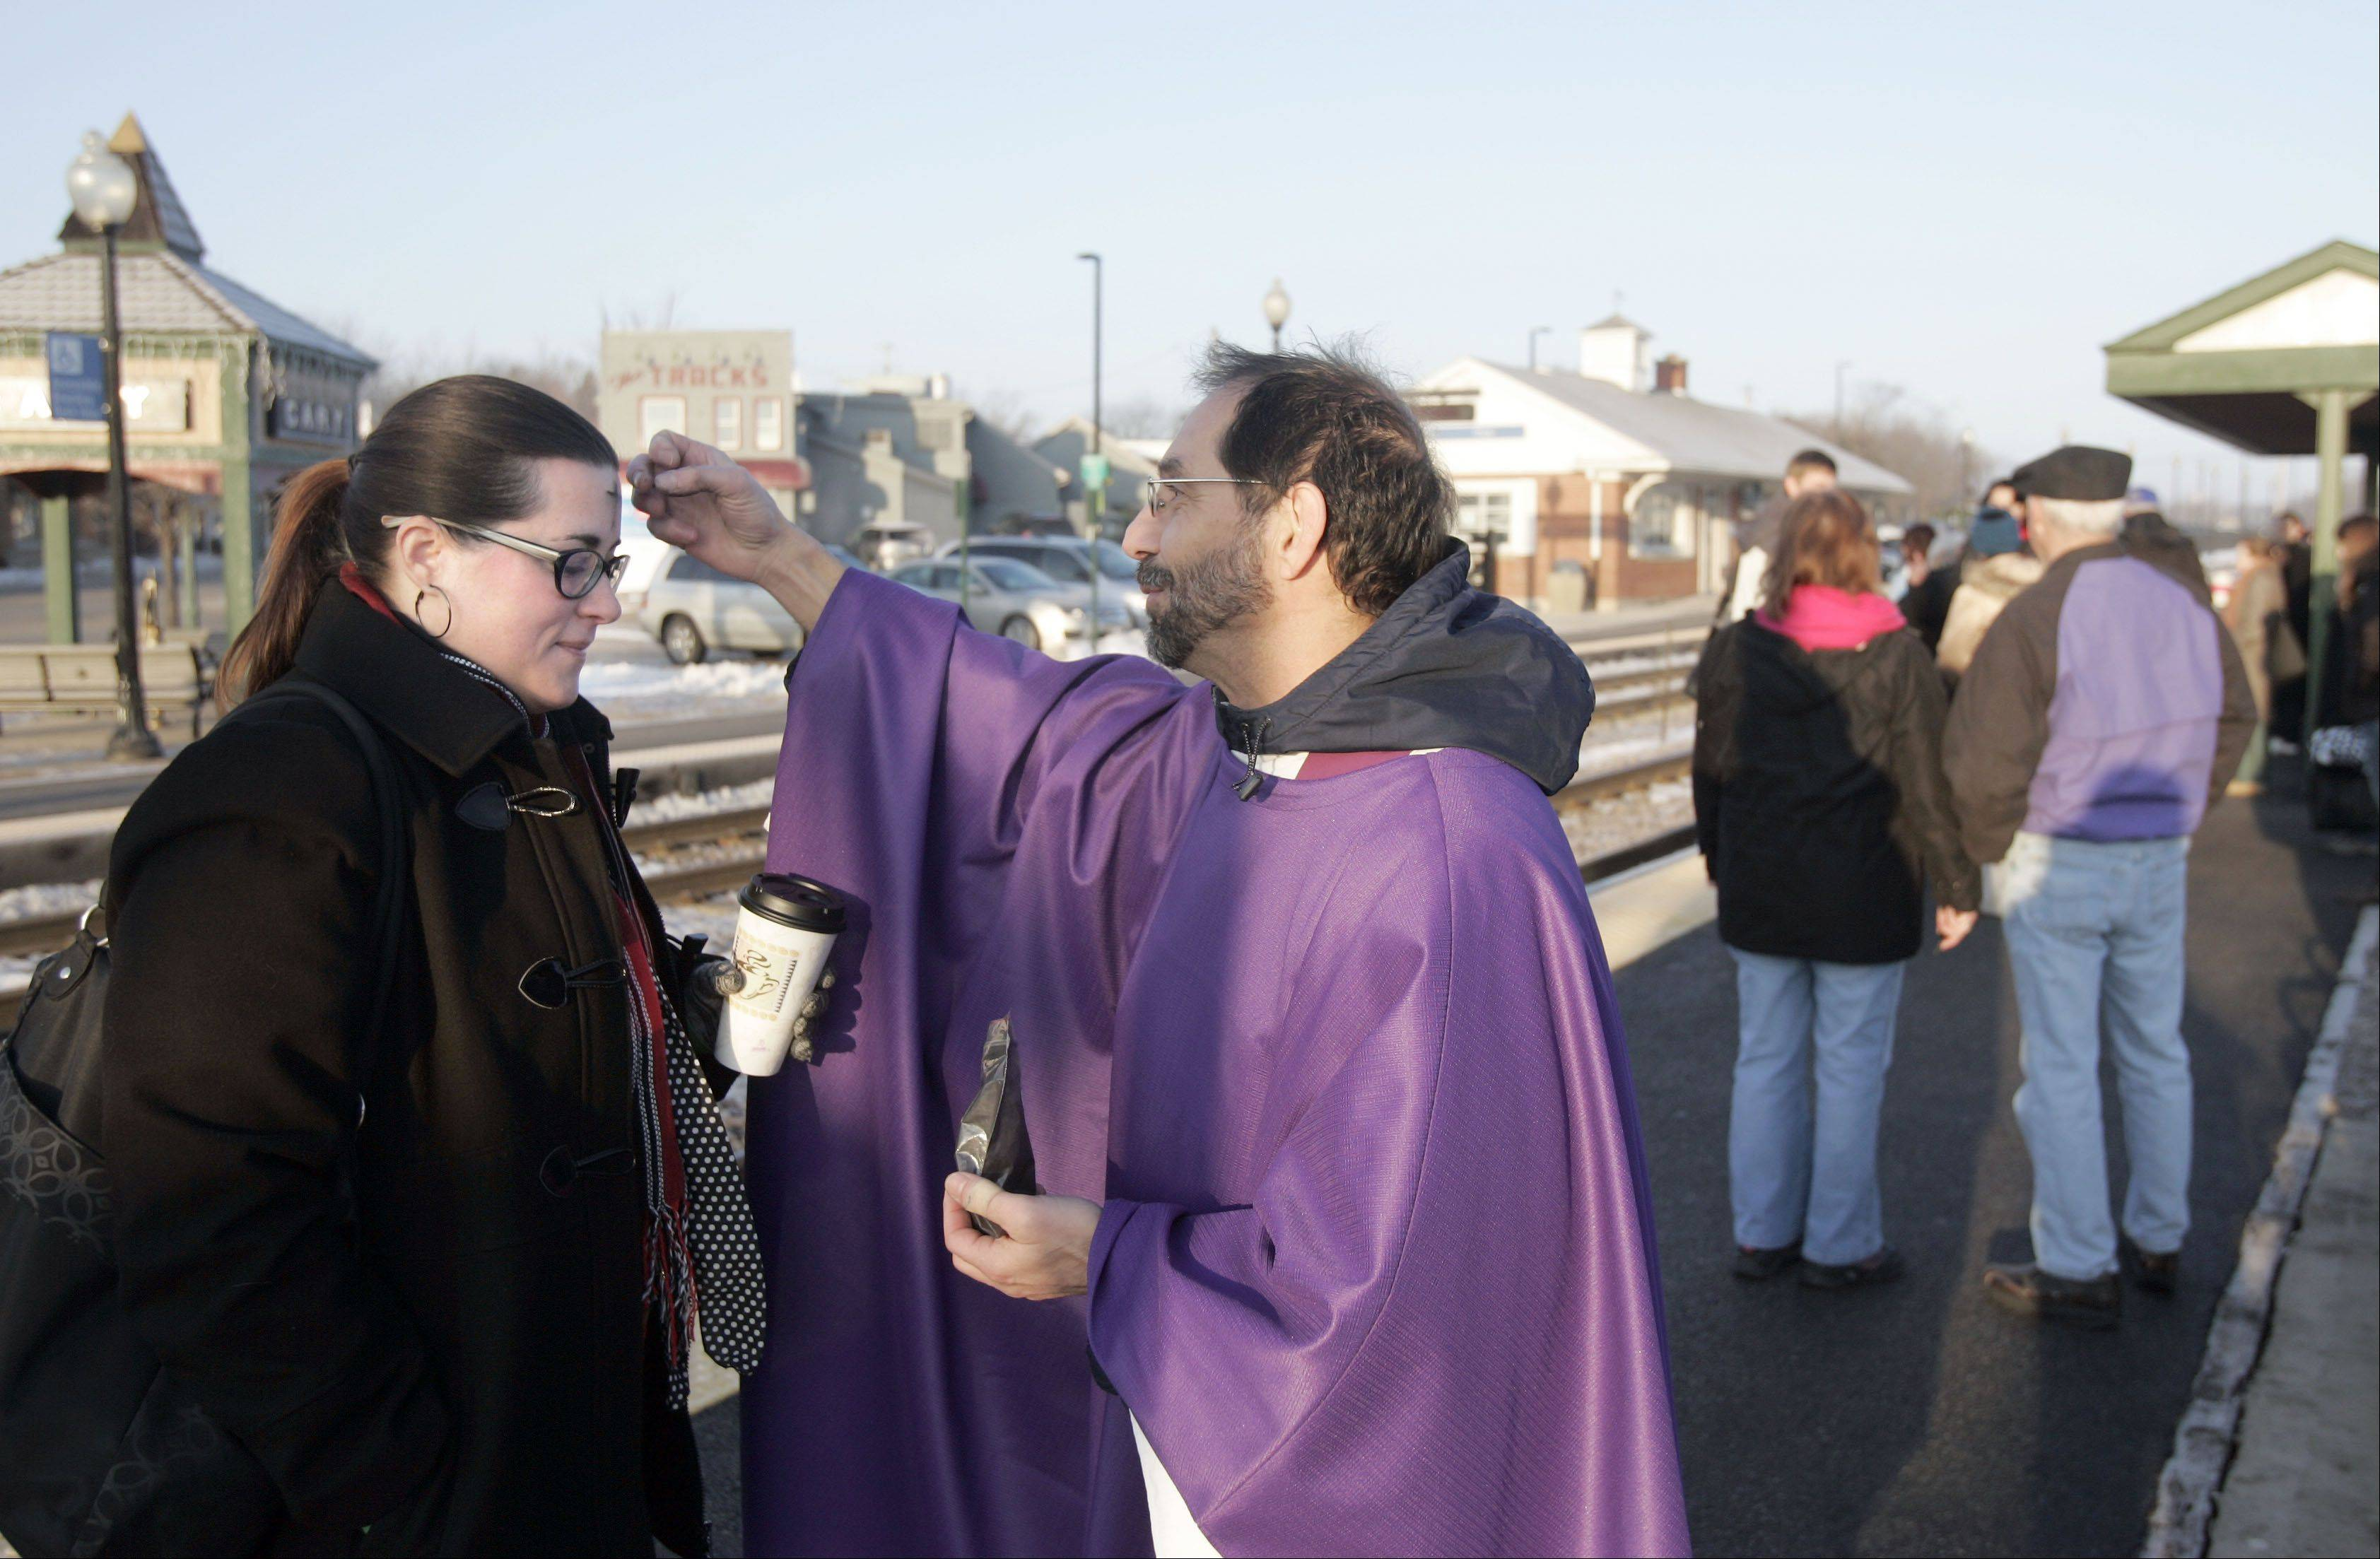 The Rev. Manny Borg of St. Nicholas Episcopal Church in Elk Grove Village disperses ashes to Kelly McGuigan of Lake in the Hills as she starts her commute at the Cary Metra Station Wednesday.